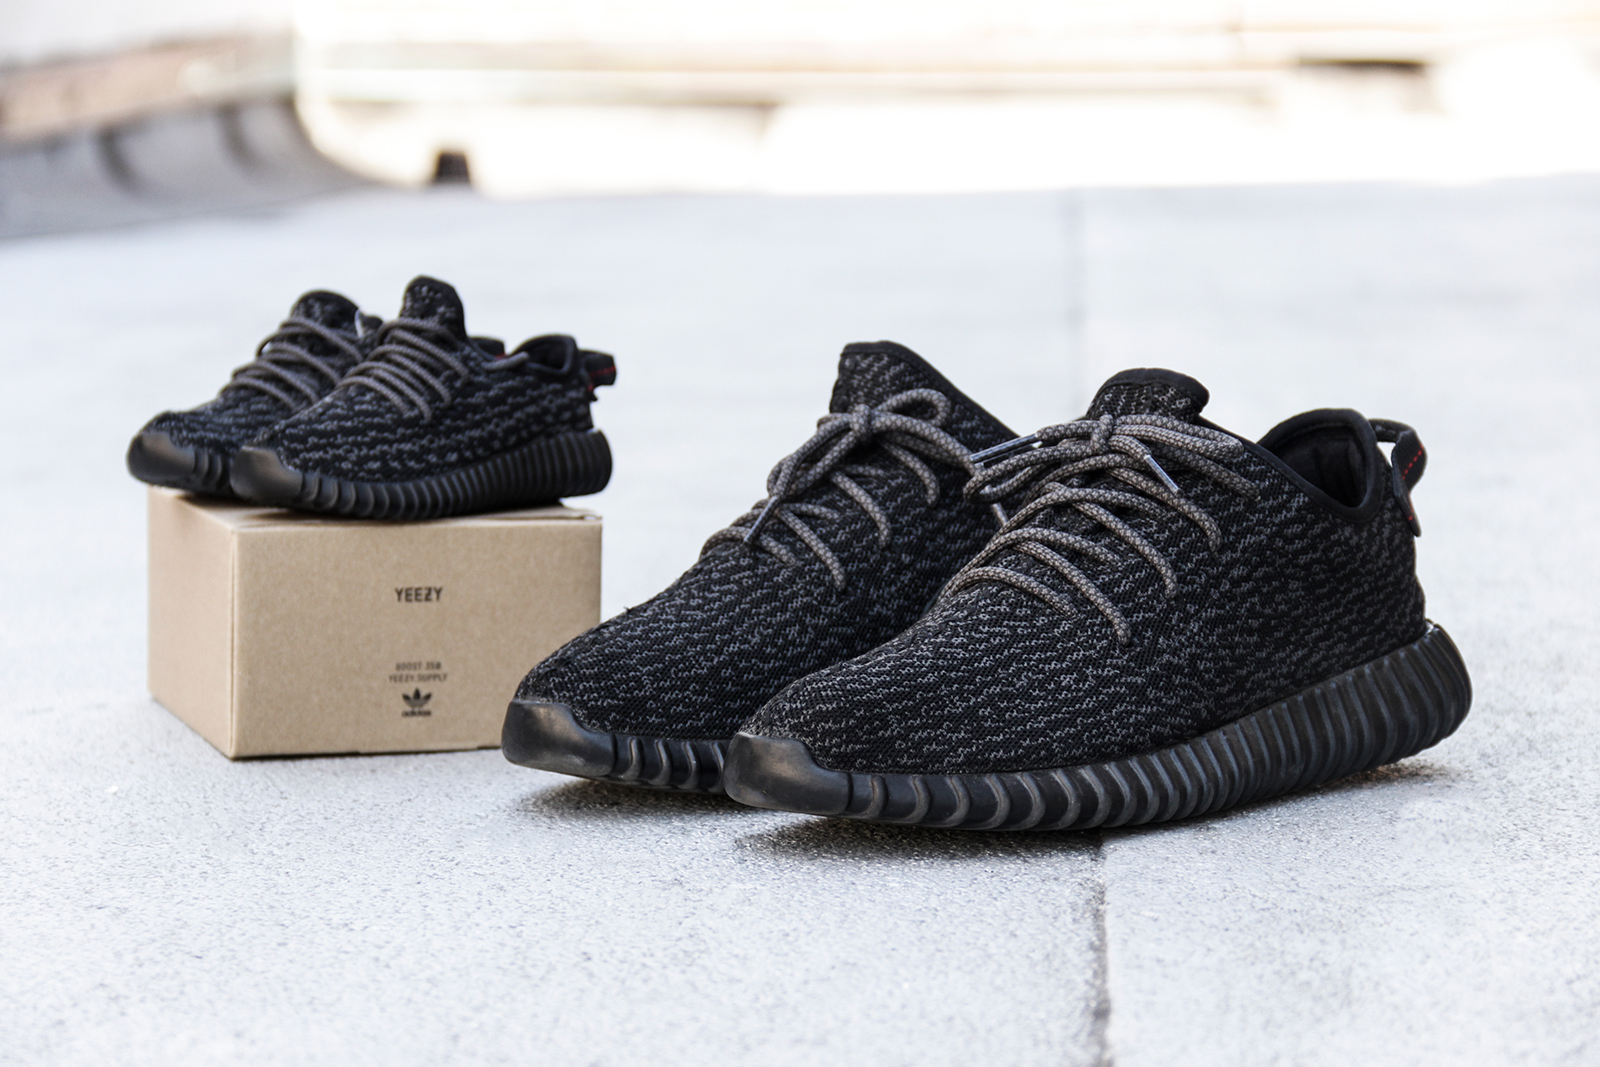 adidas yeezy boost 350 infant pirate black - 1312954